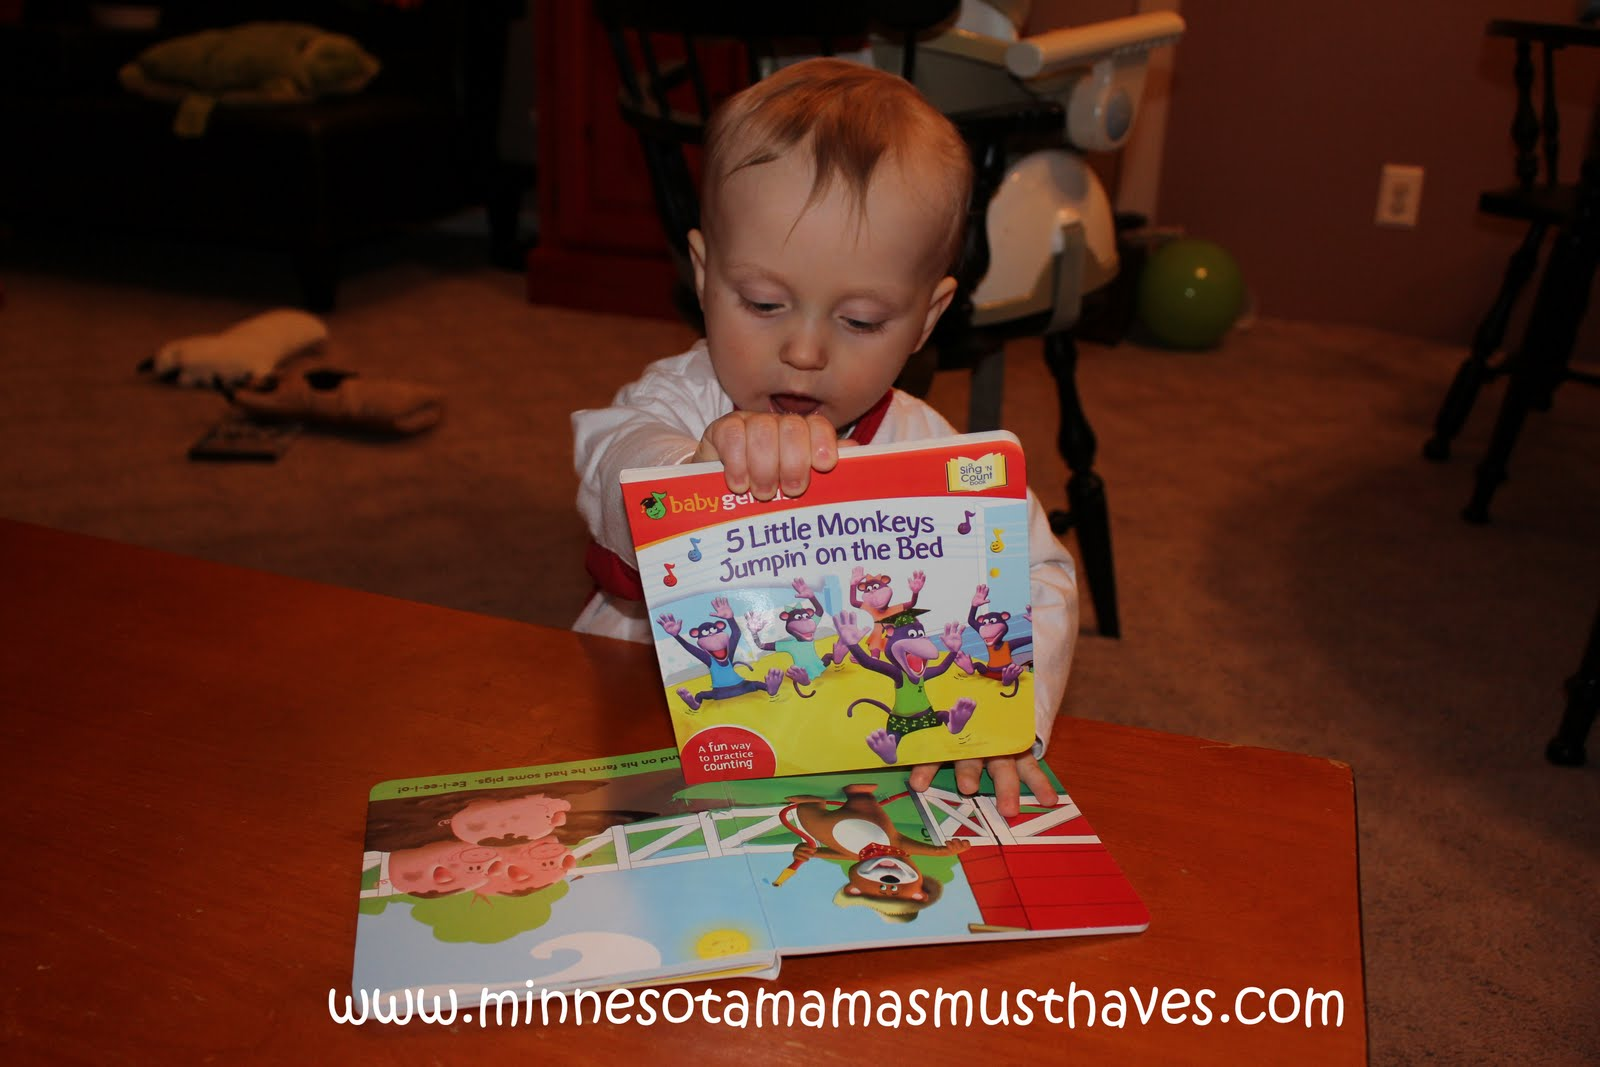 how to raise a genius baby book